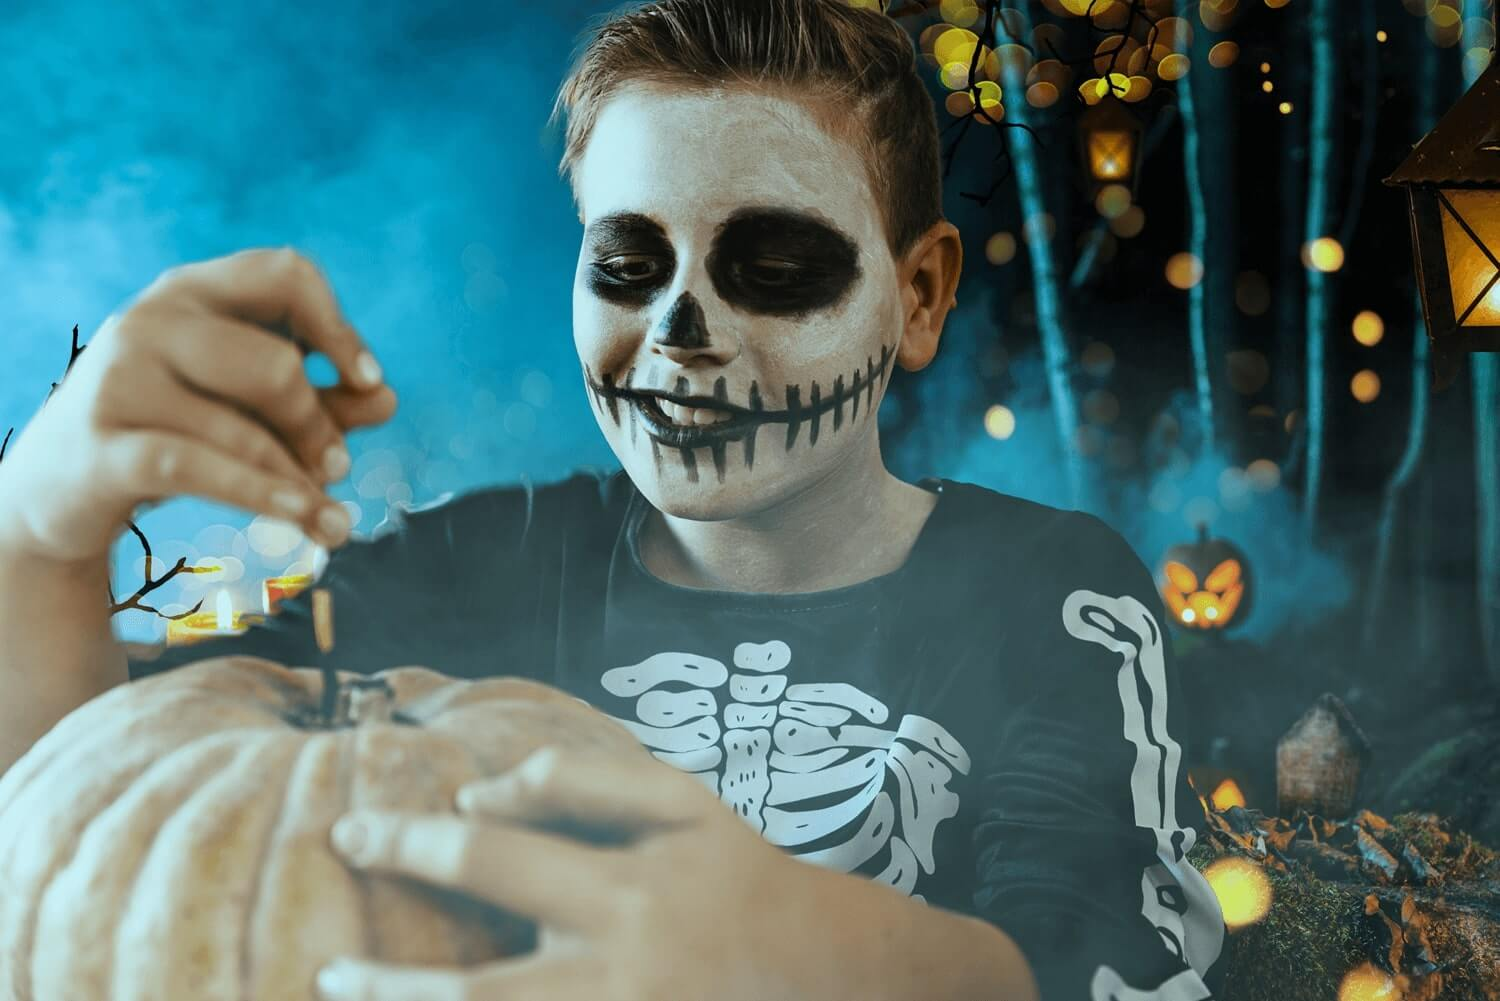 a boy dressed up as a skeleton for halloween carving a pumpkin